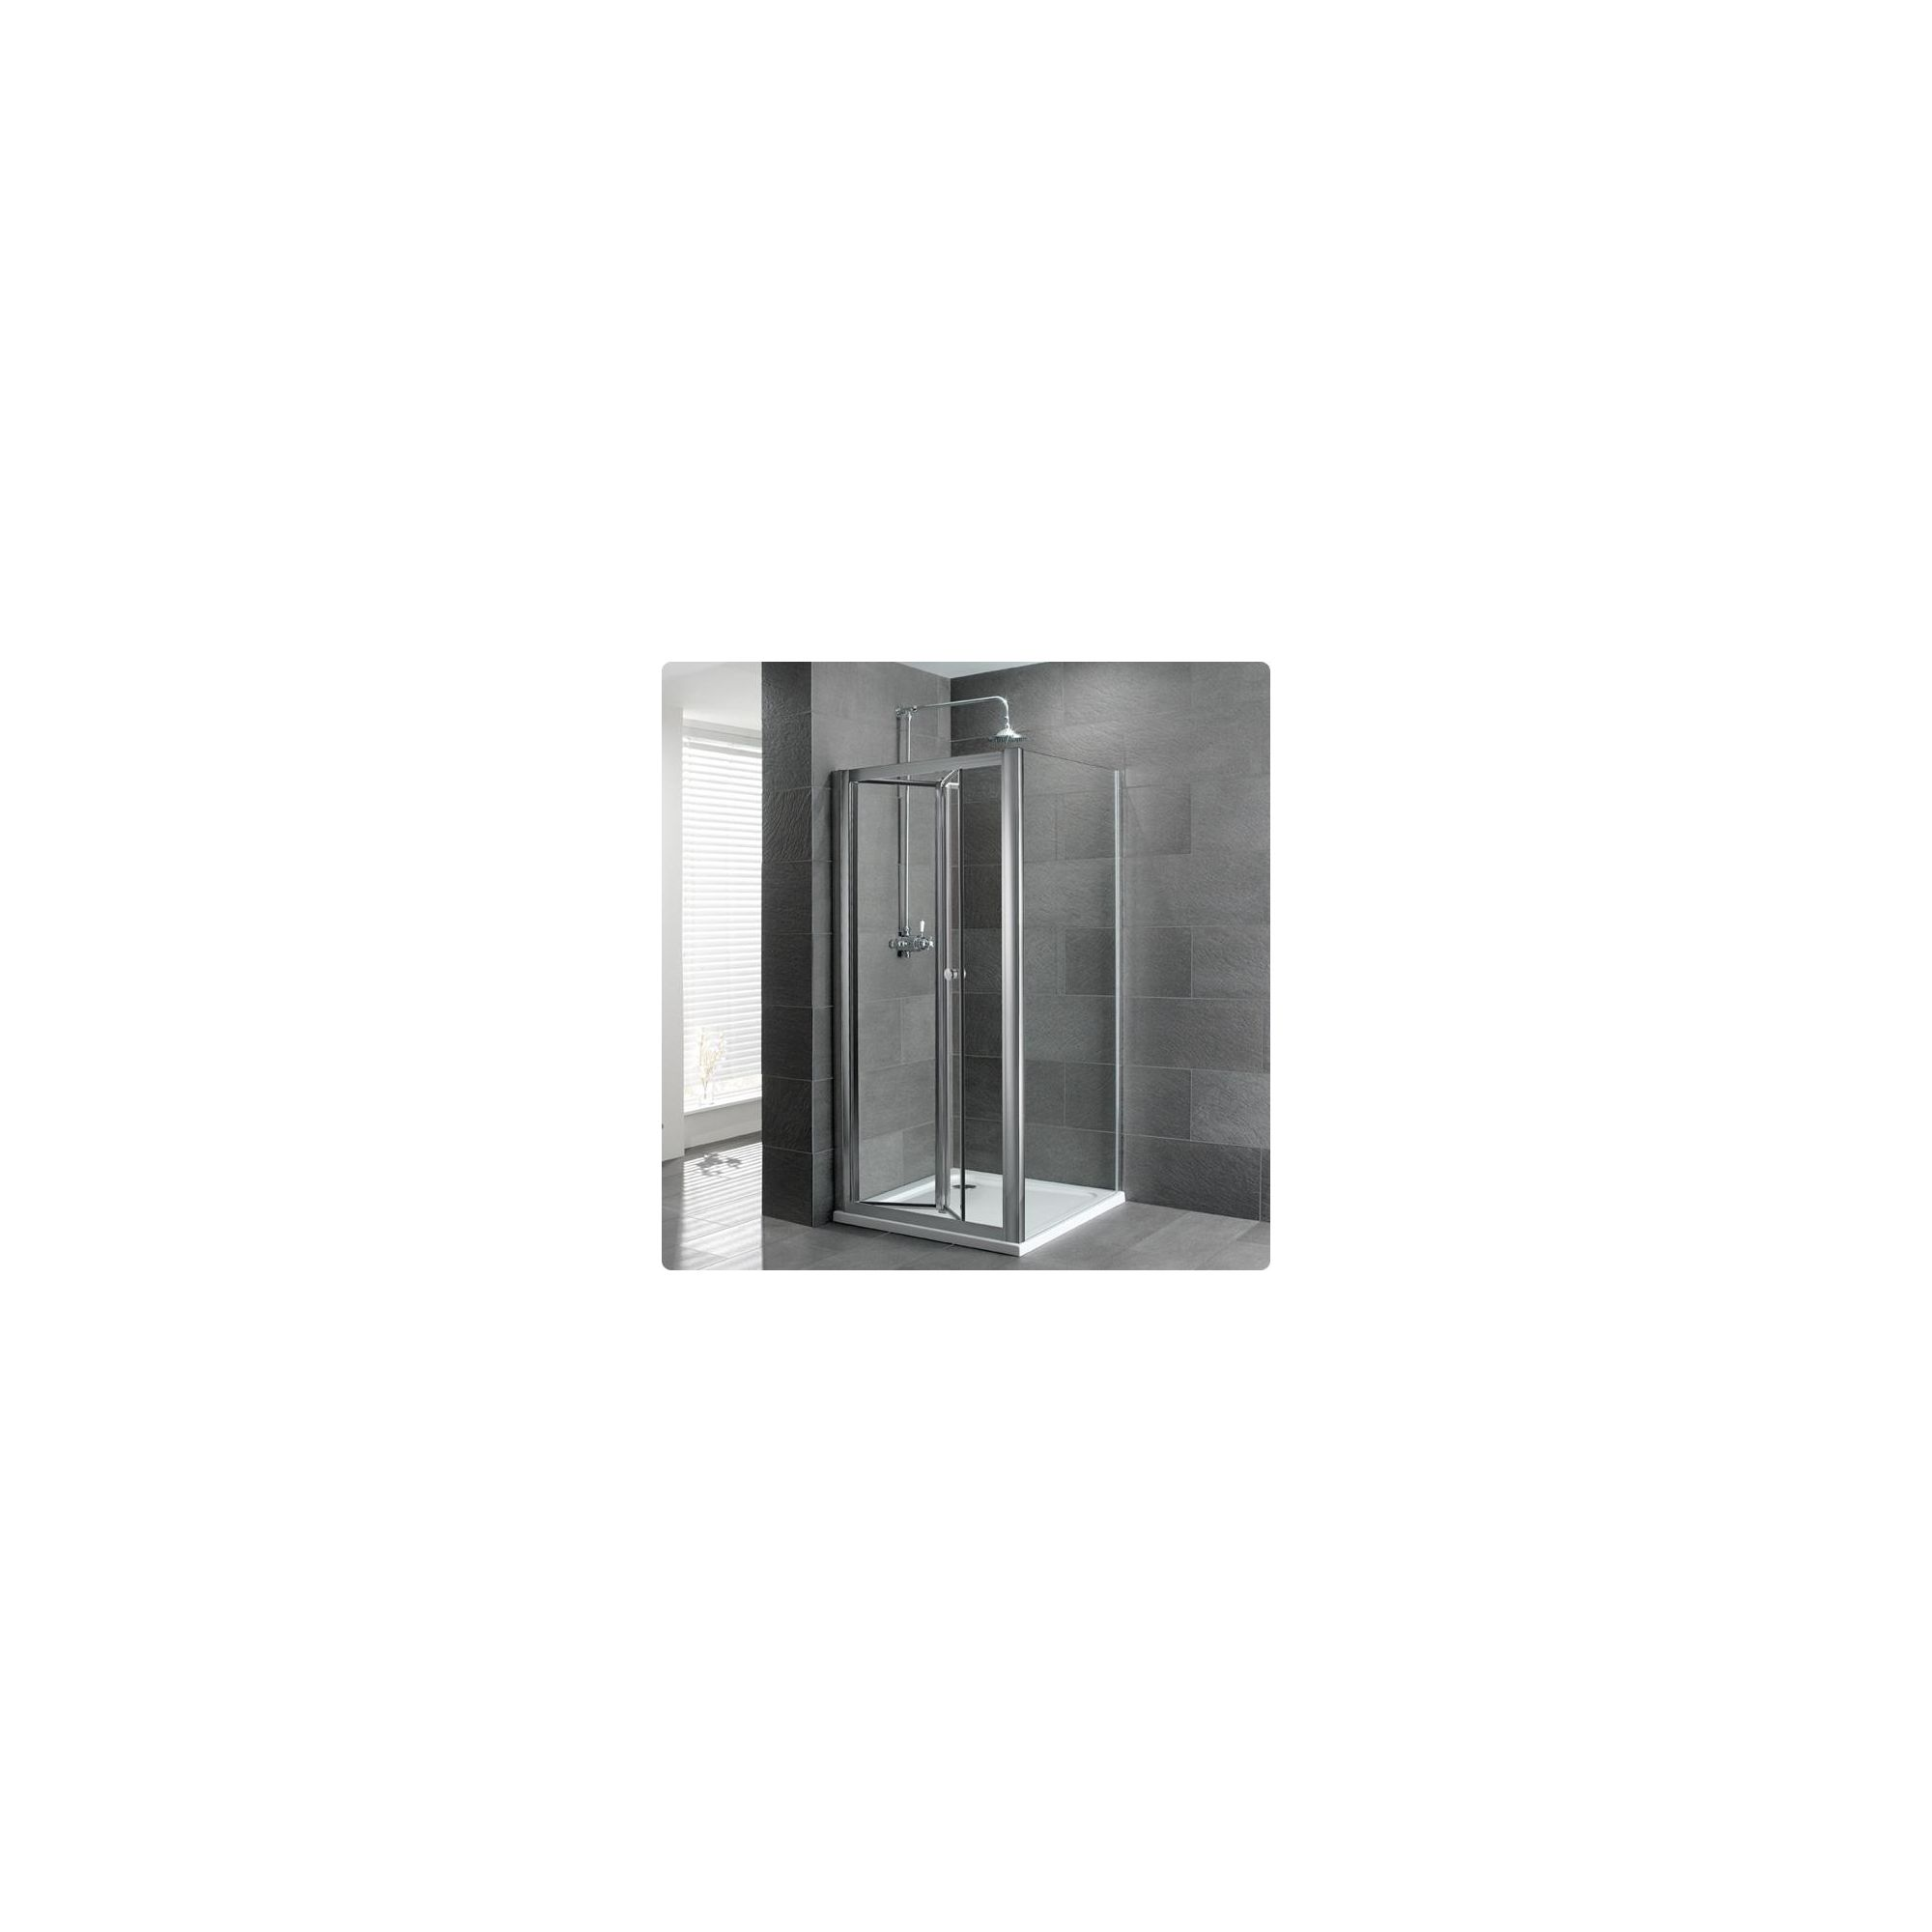 Duchy Select Silver Bi-Fold Door Shower Enclosure, 900mm x 800mm, Standard Tray, 6mm Glass at Tesco Direct